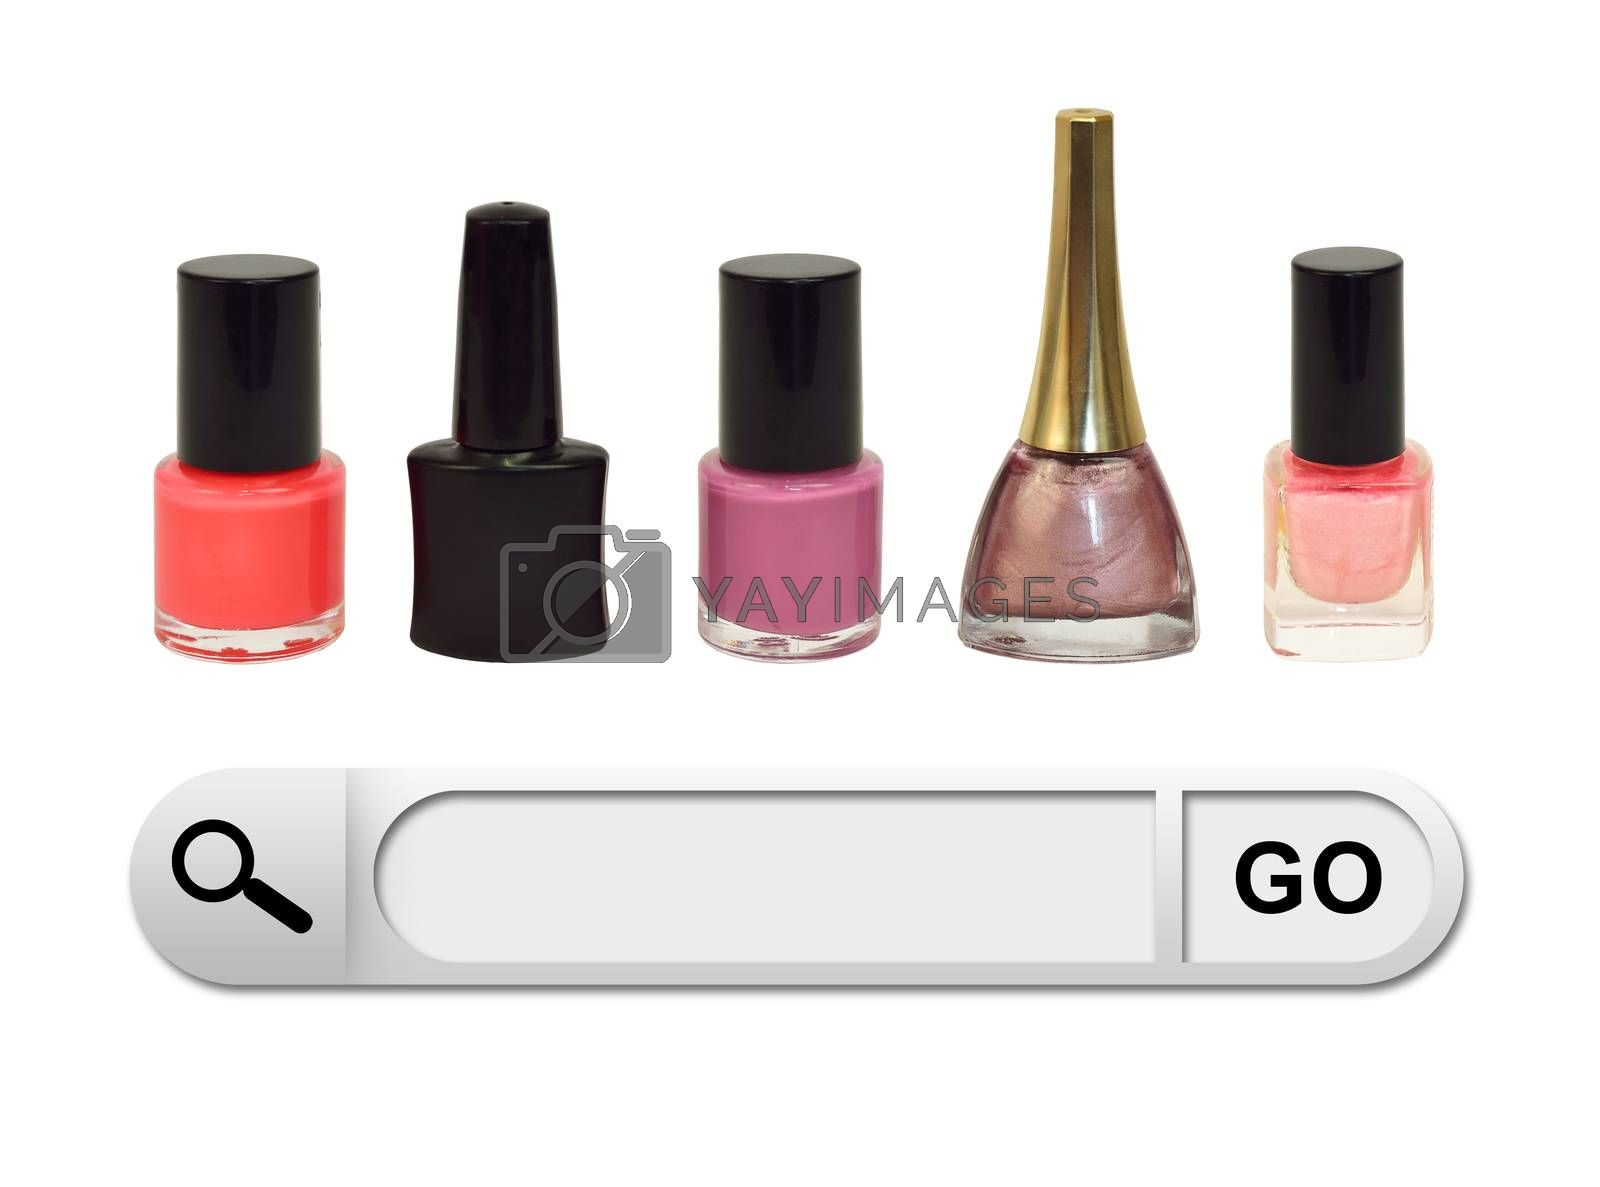 Search bar in browser. Colorful bottles nail polish as backdrop